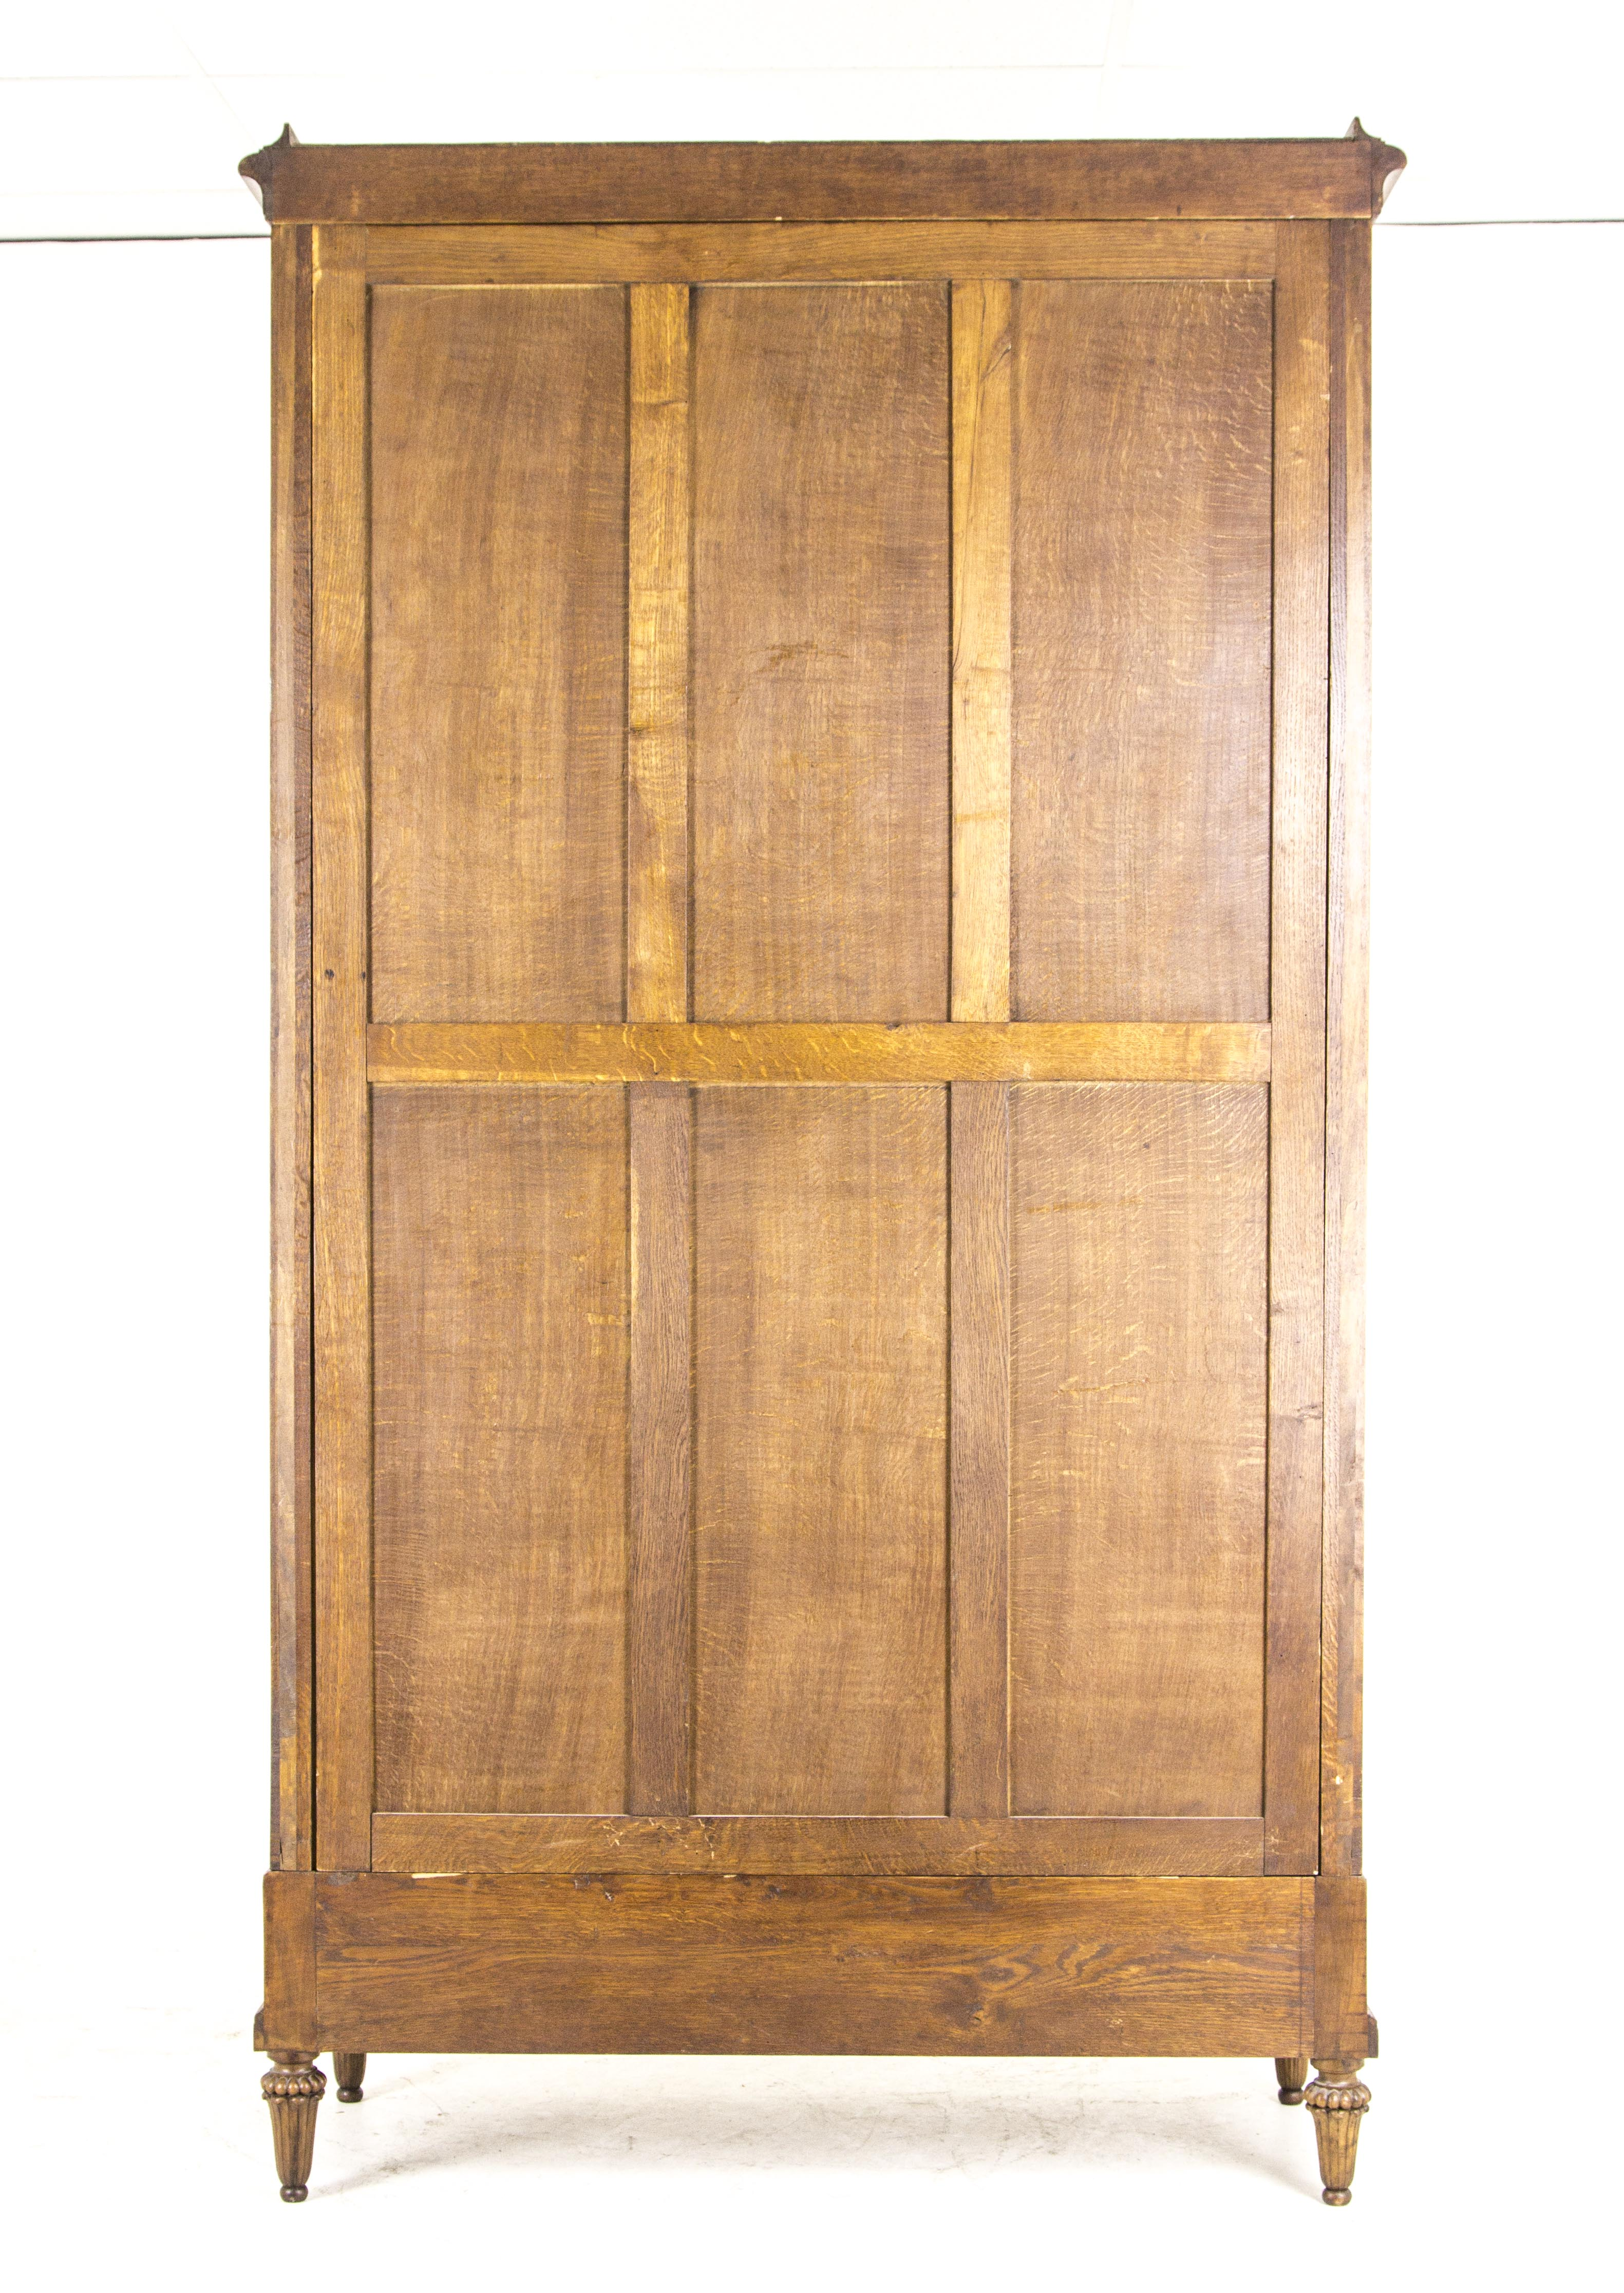 rustic wooden door armoires the bedroom sale mirror of white closet under mirrored furniture doors armoire wardrobe aspen for small antique corner lovely awesome black with thomasville sliding solid wood three